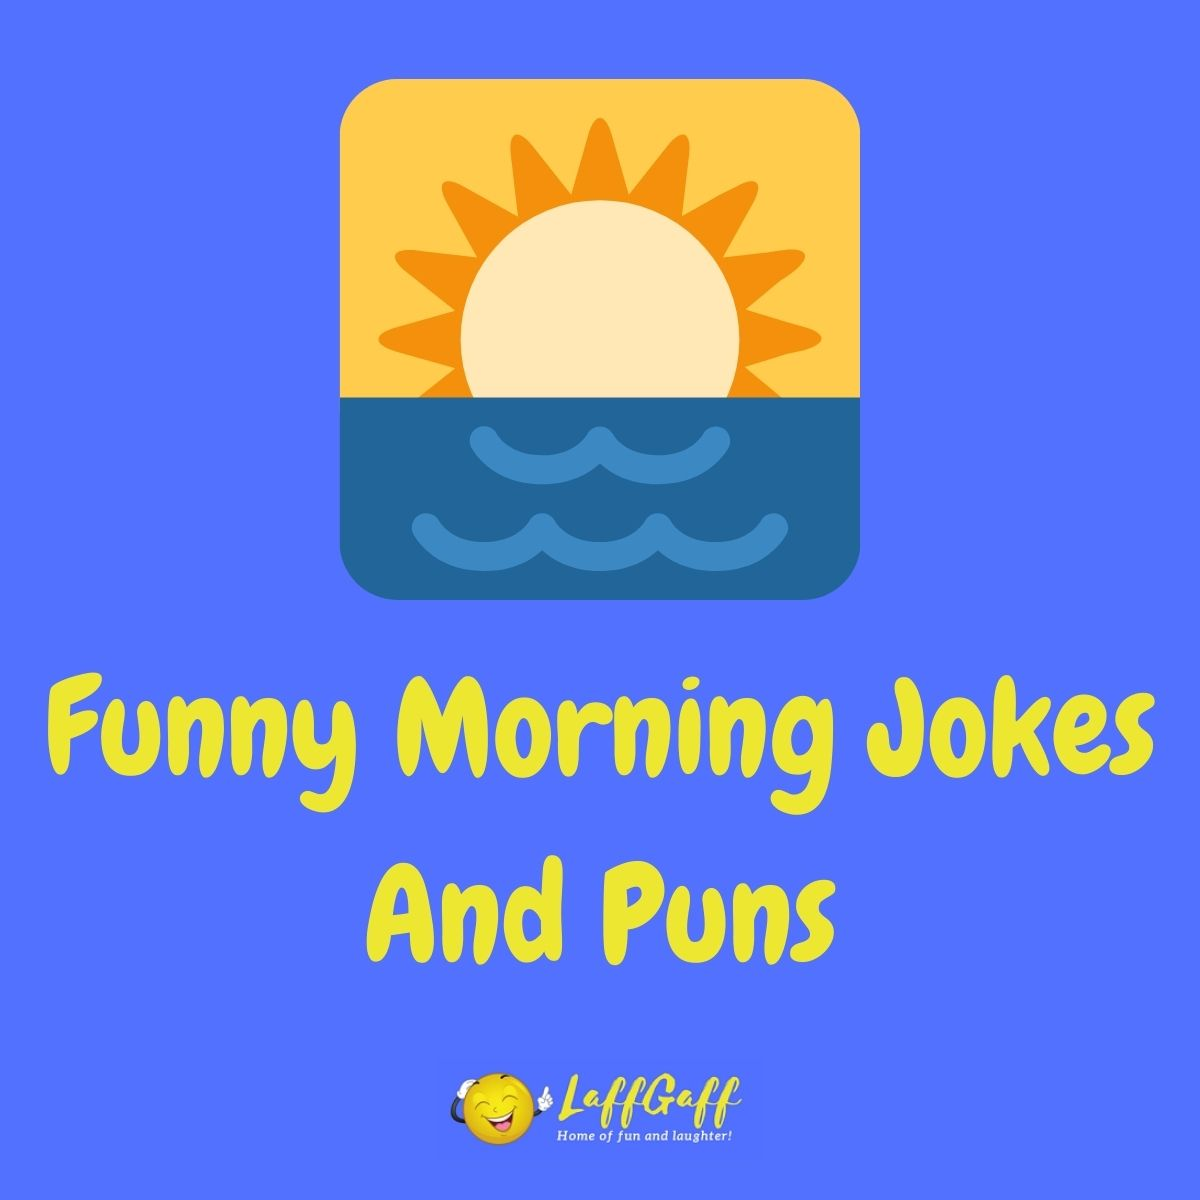 Featured image for a page of good morning jokes and puns.